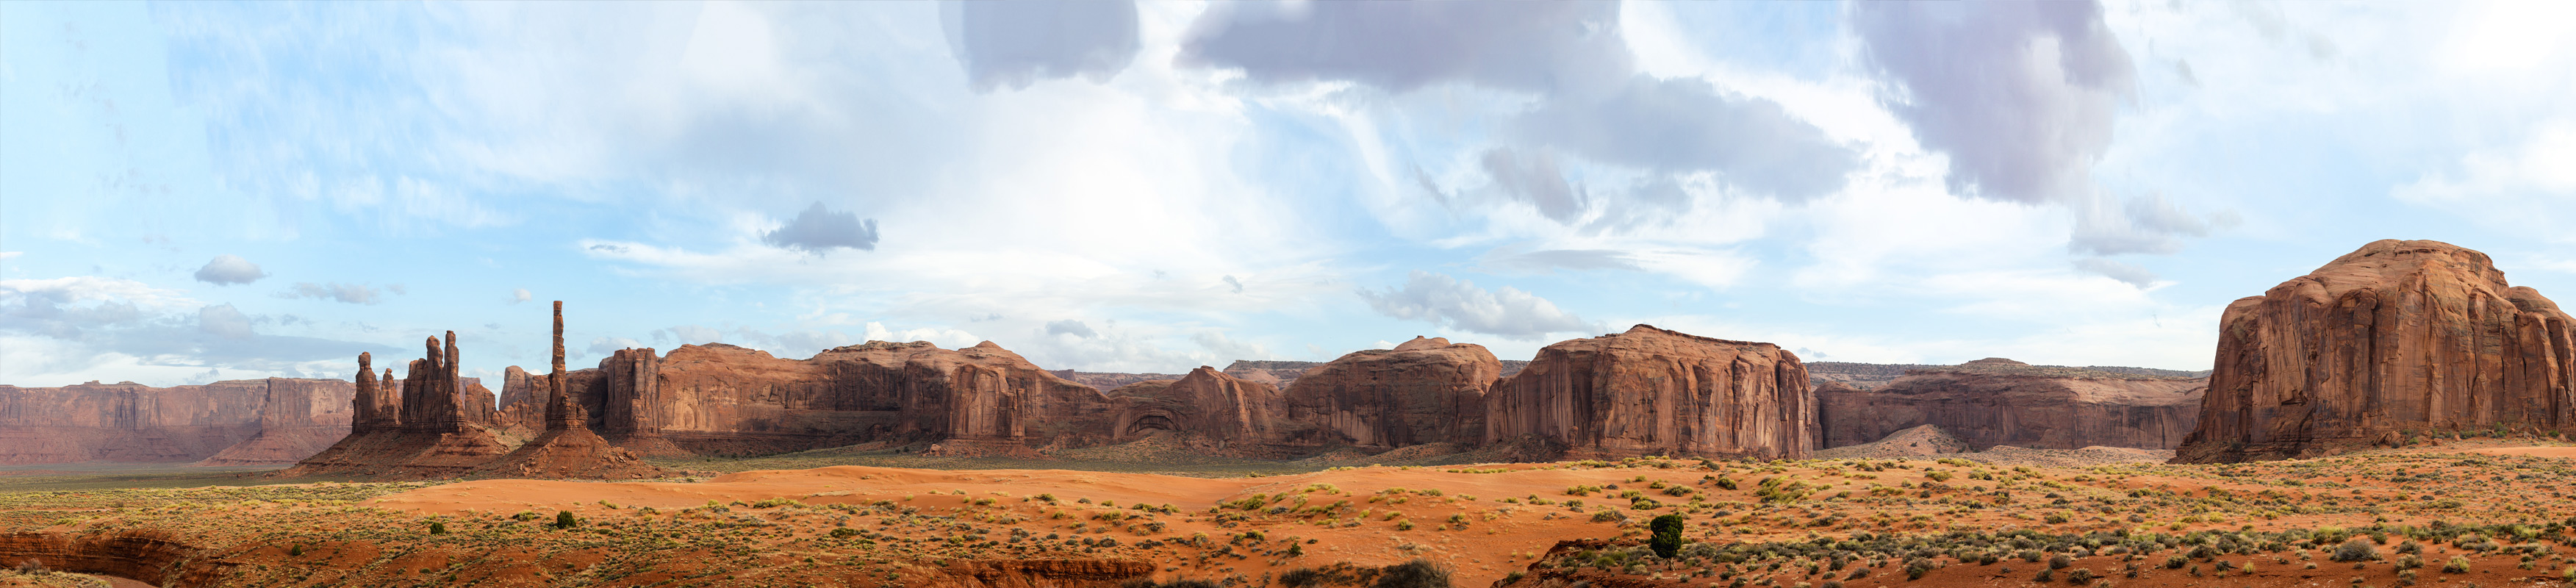 Desert-landscape-Monument-Valley